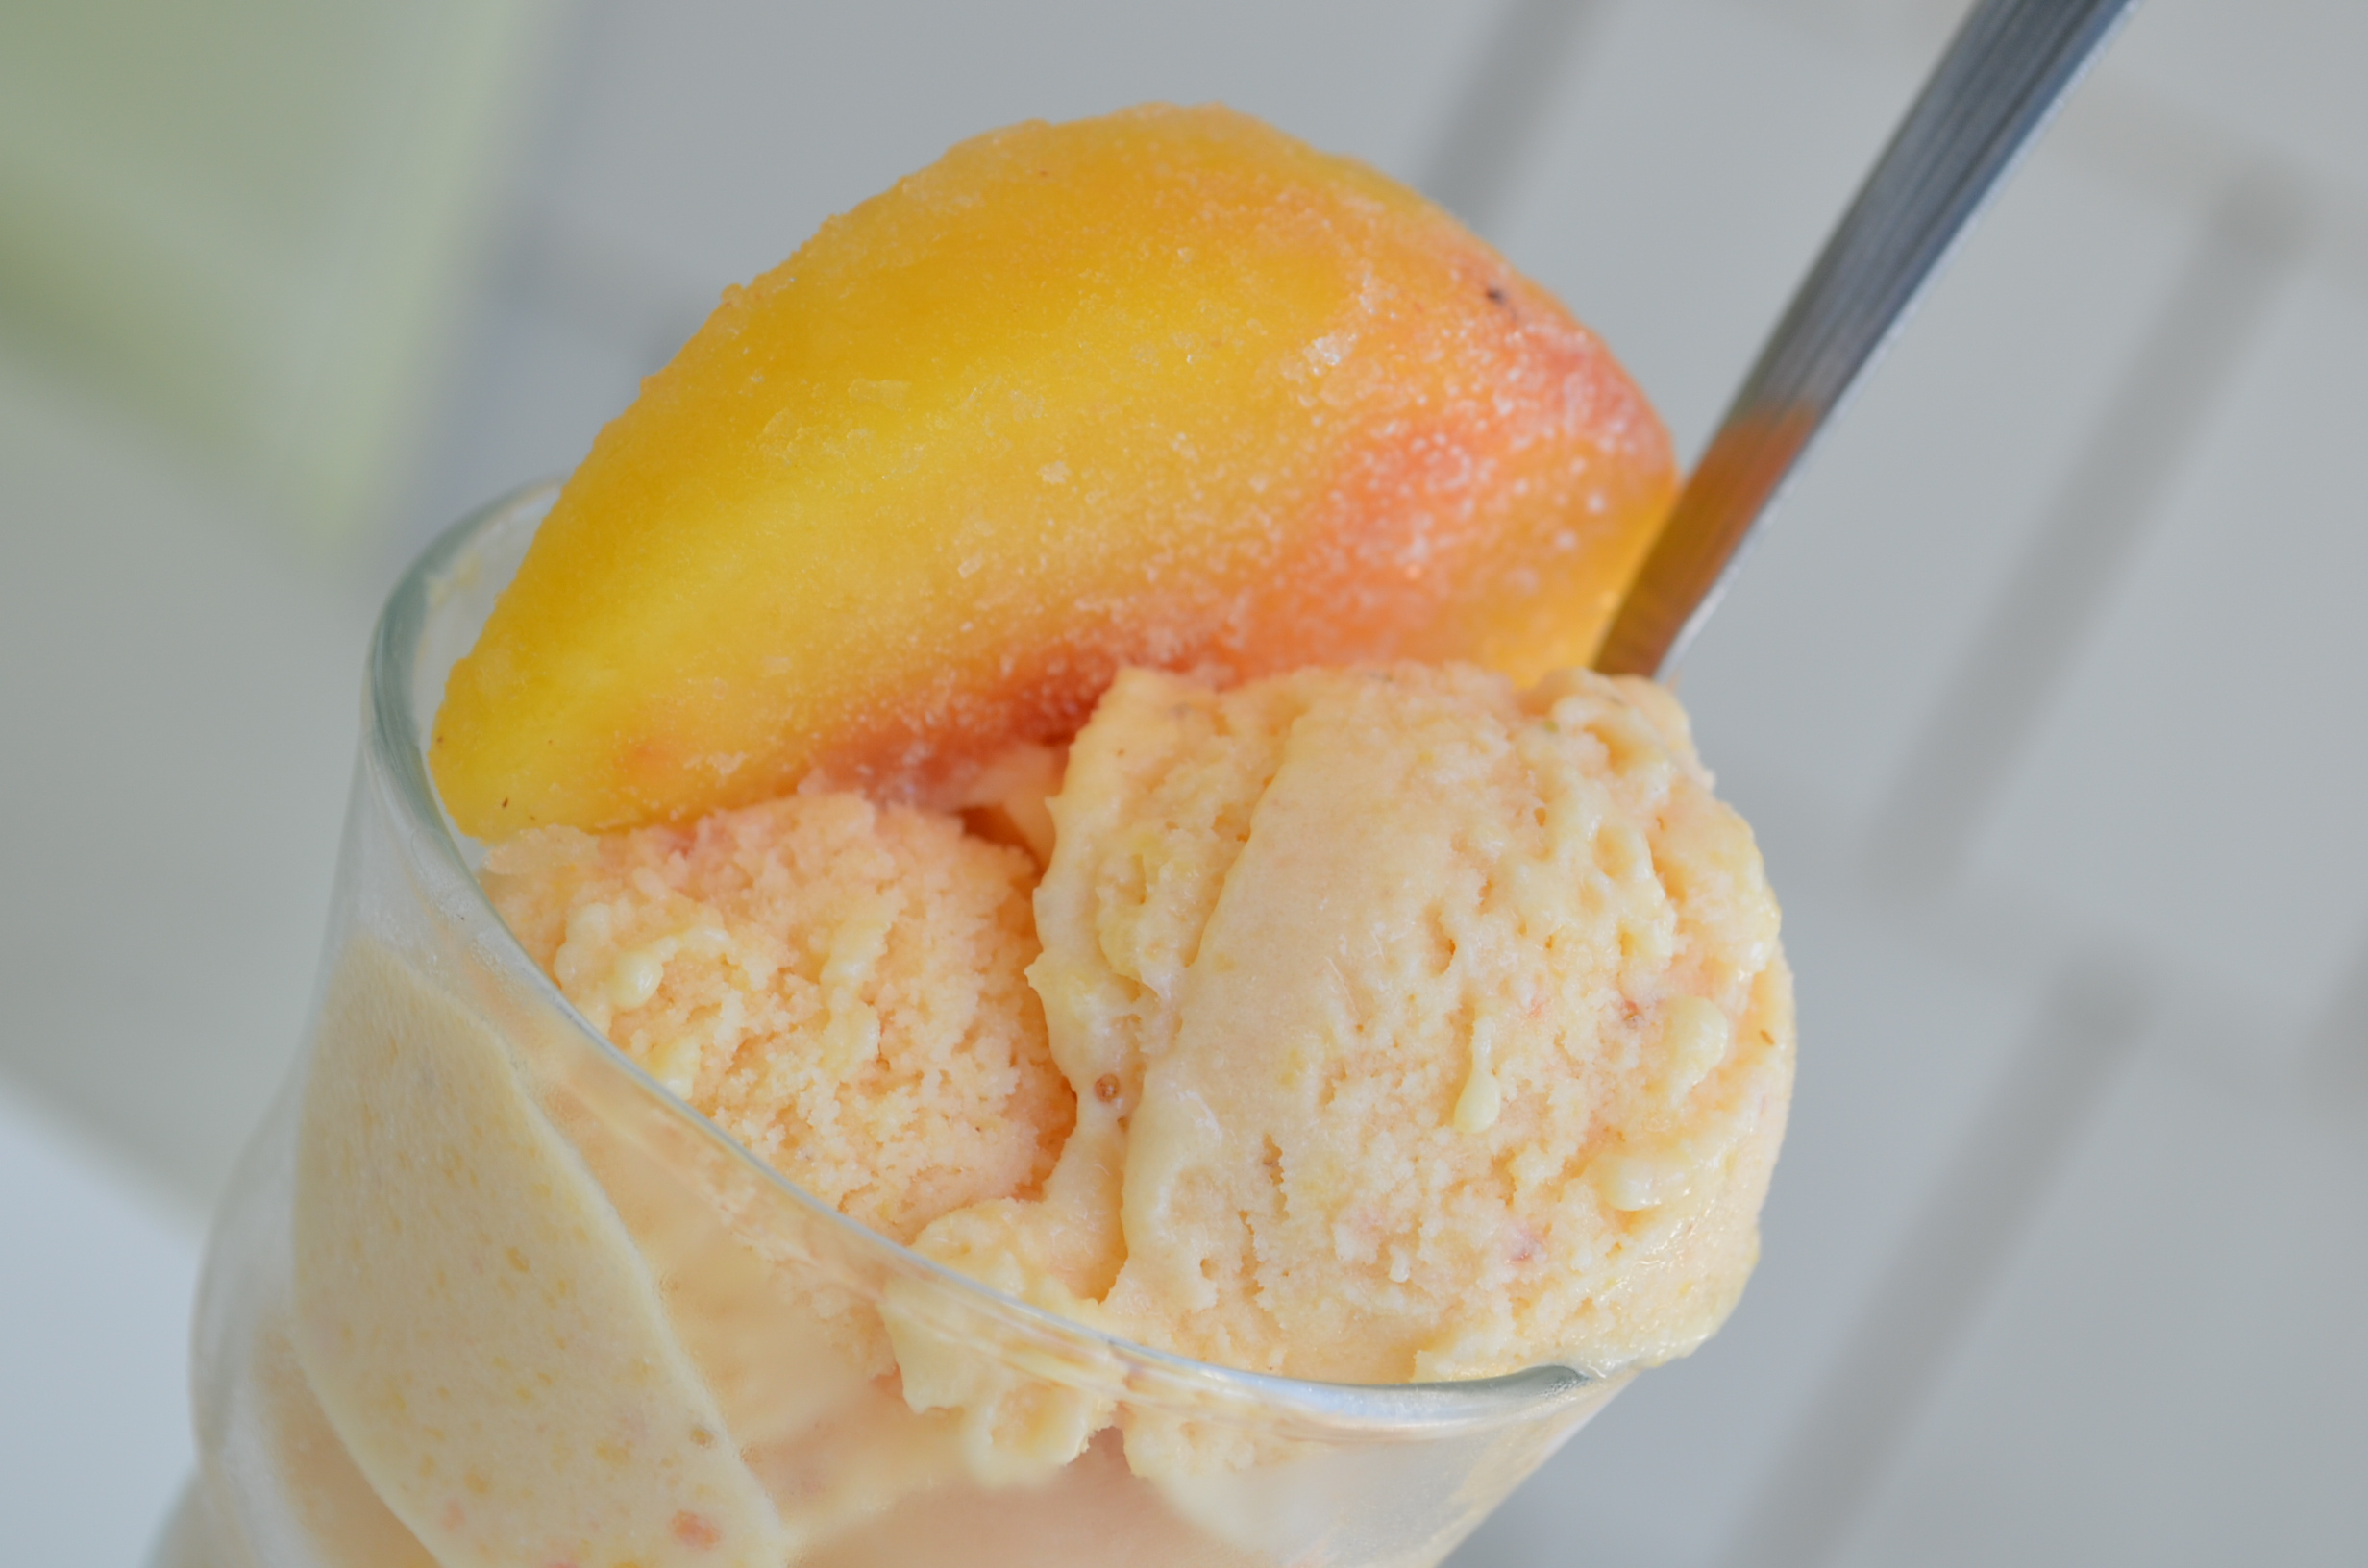 Peaches and Pineapple Sorbet